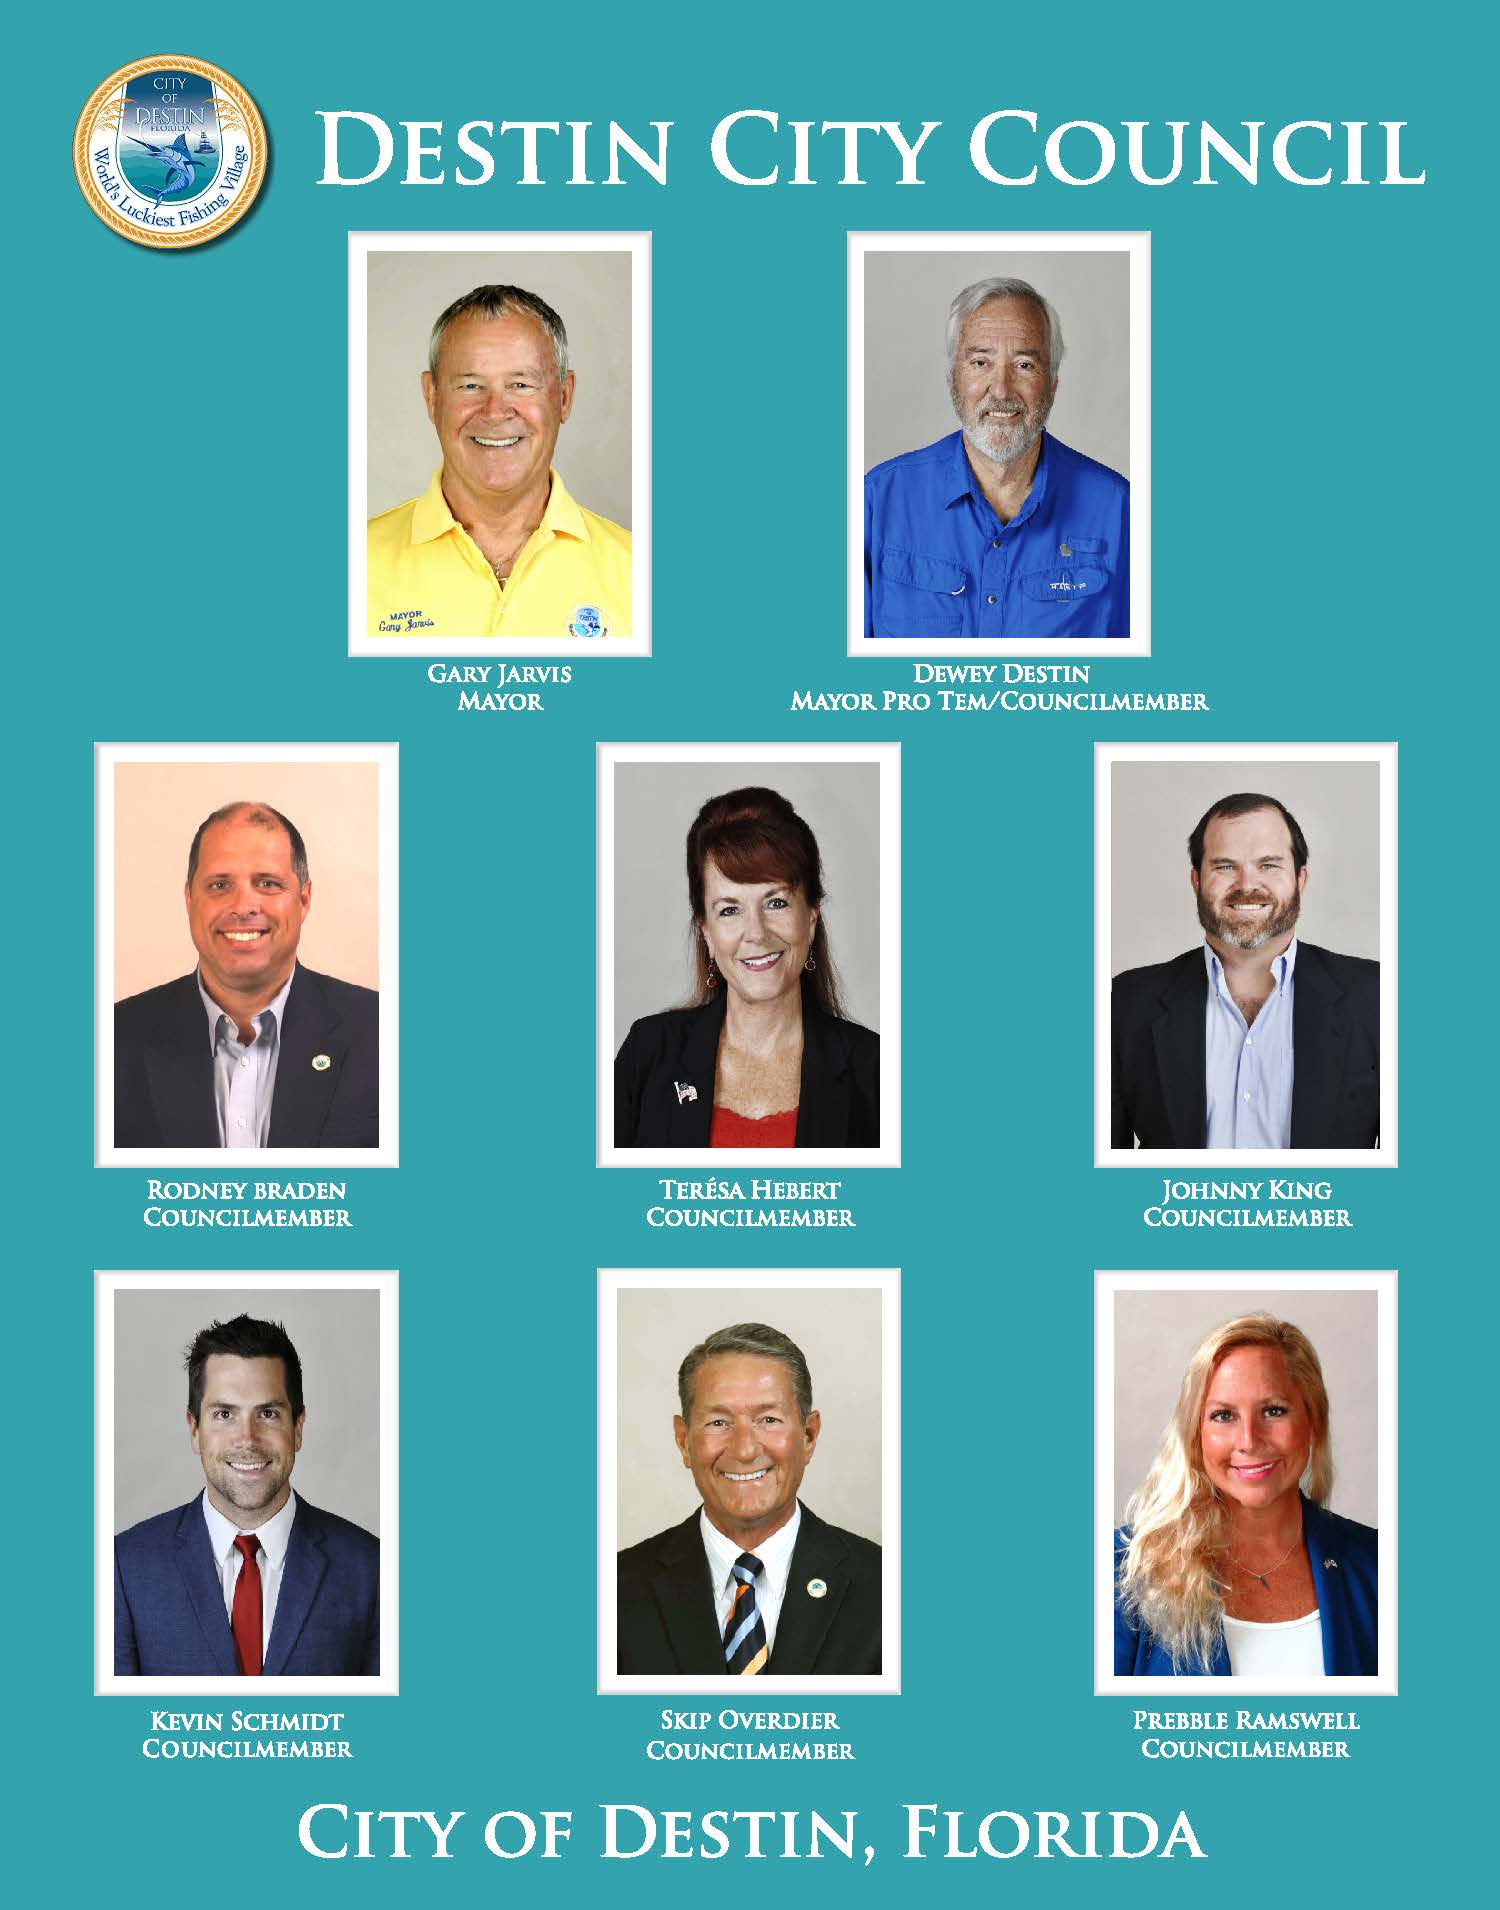 Pictures of council members and mayor